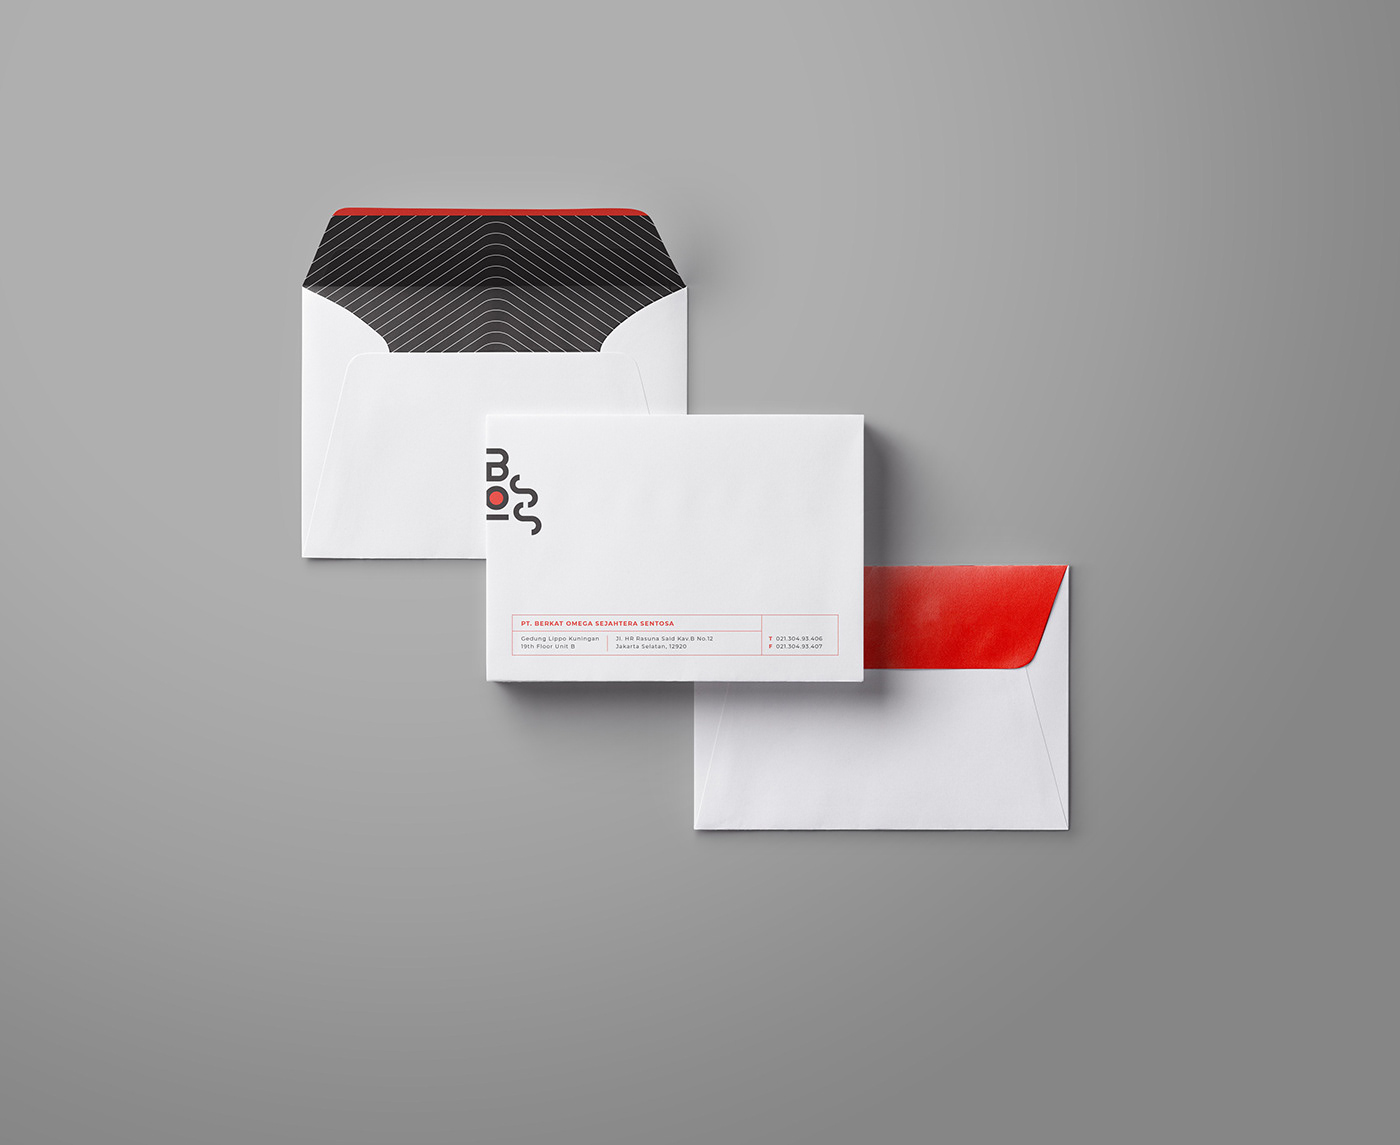 corporate business card stationary cover letter envelope Name card Food  beverage freebies company